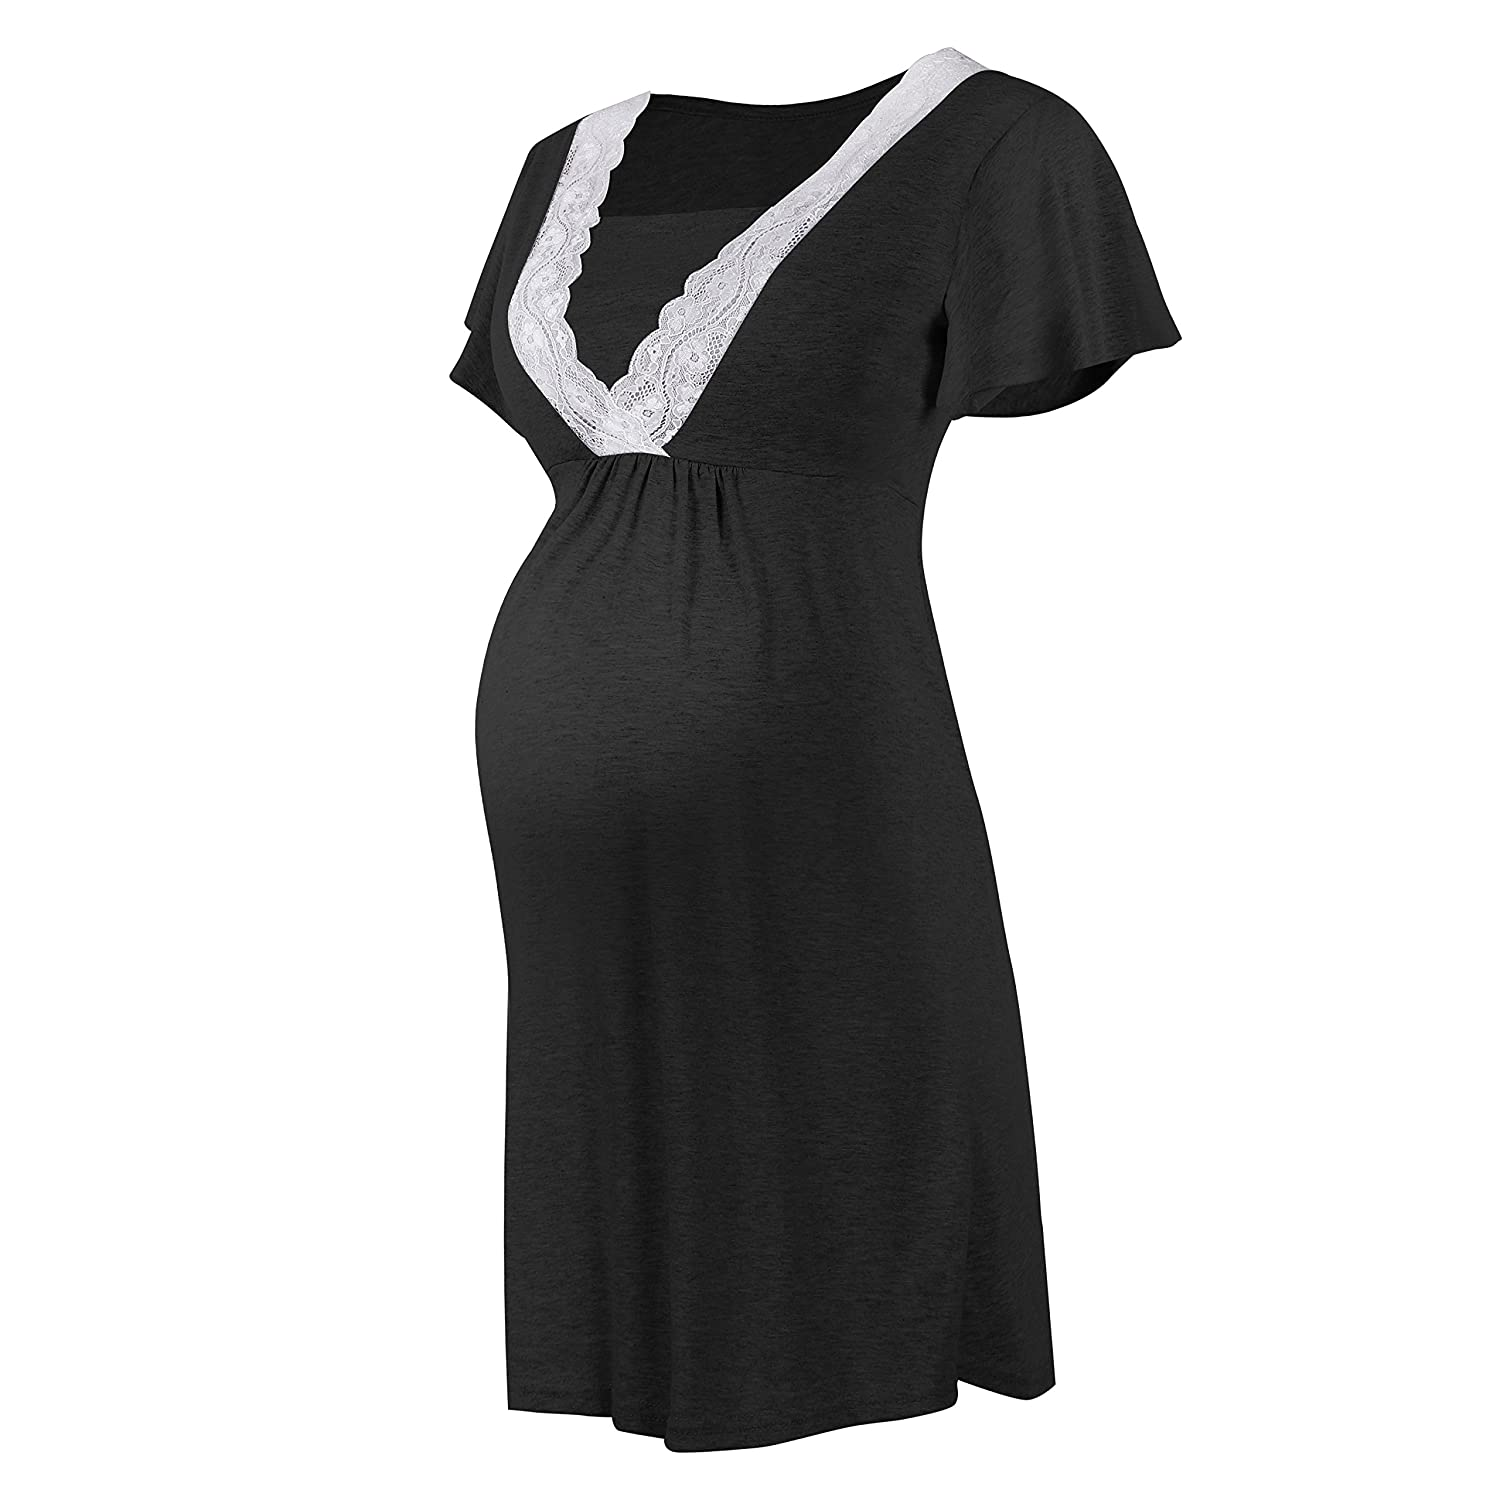 SUNNYBUY Women Short Sleeve Nursing Dresses Pregnancy Clothes Maternity Nightgown Breastfeed Sleepwear